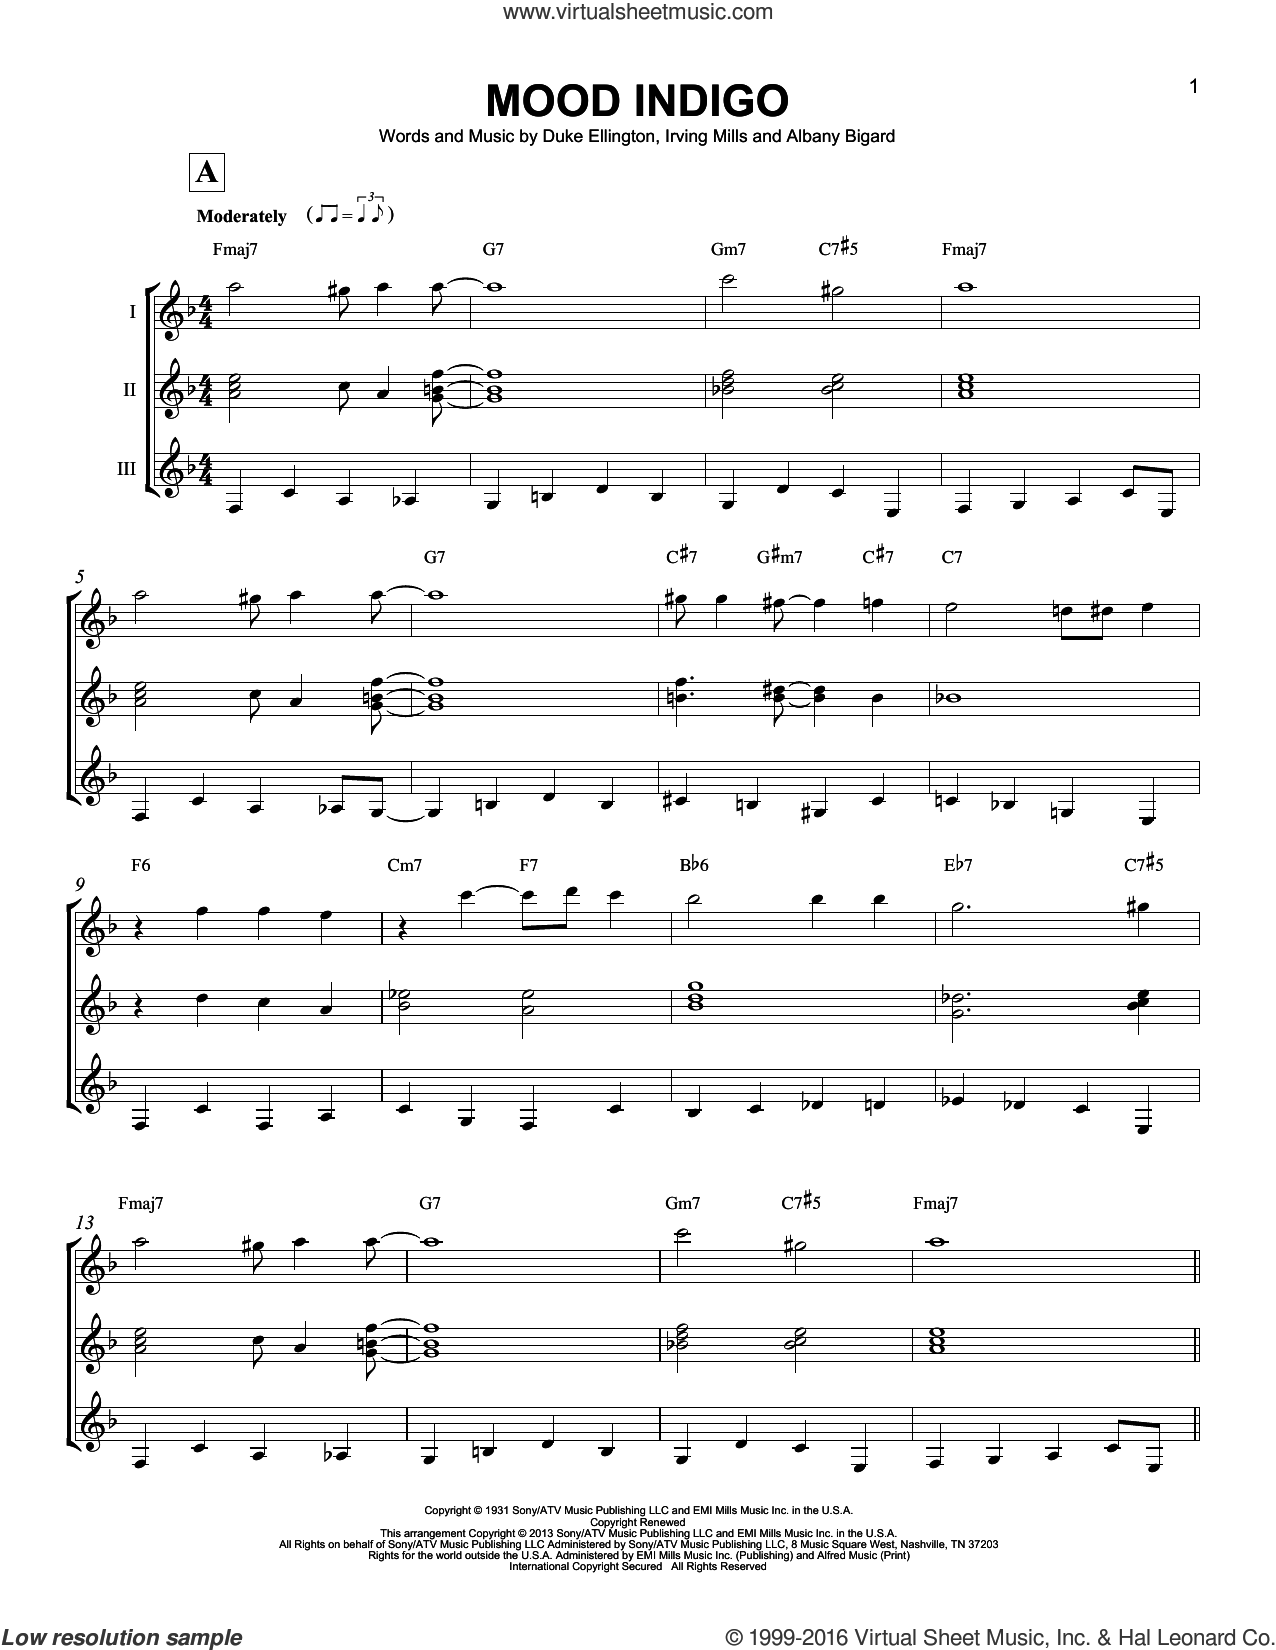 Mood Indigo sheet music for guitar ensemble by Irving Mills, Albany Bigard and Duke Ellington. Score Image Preview.